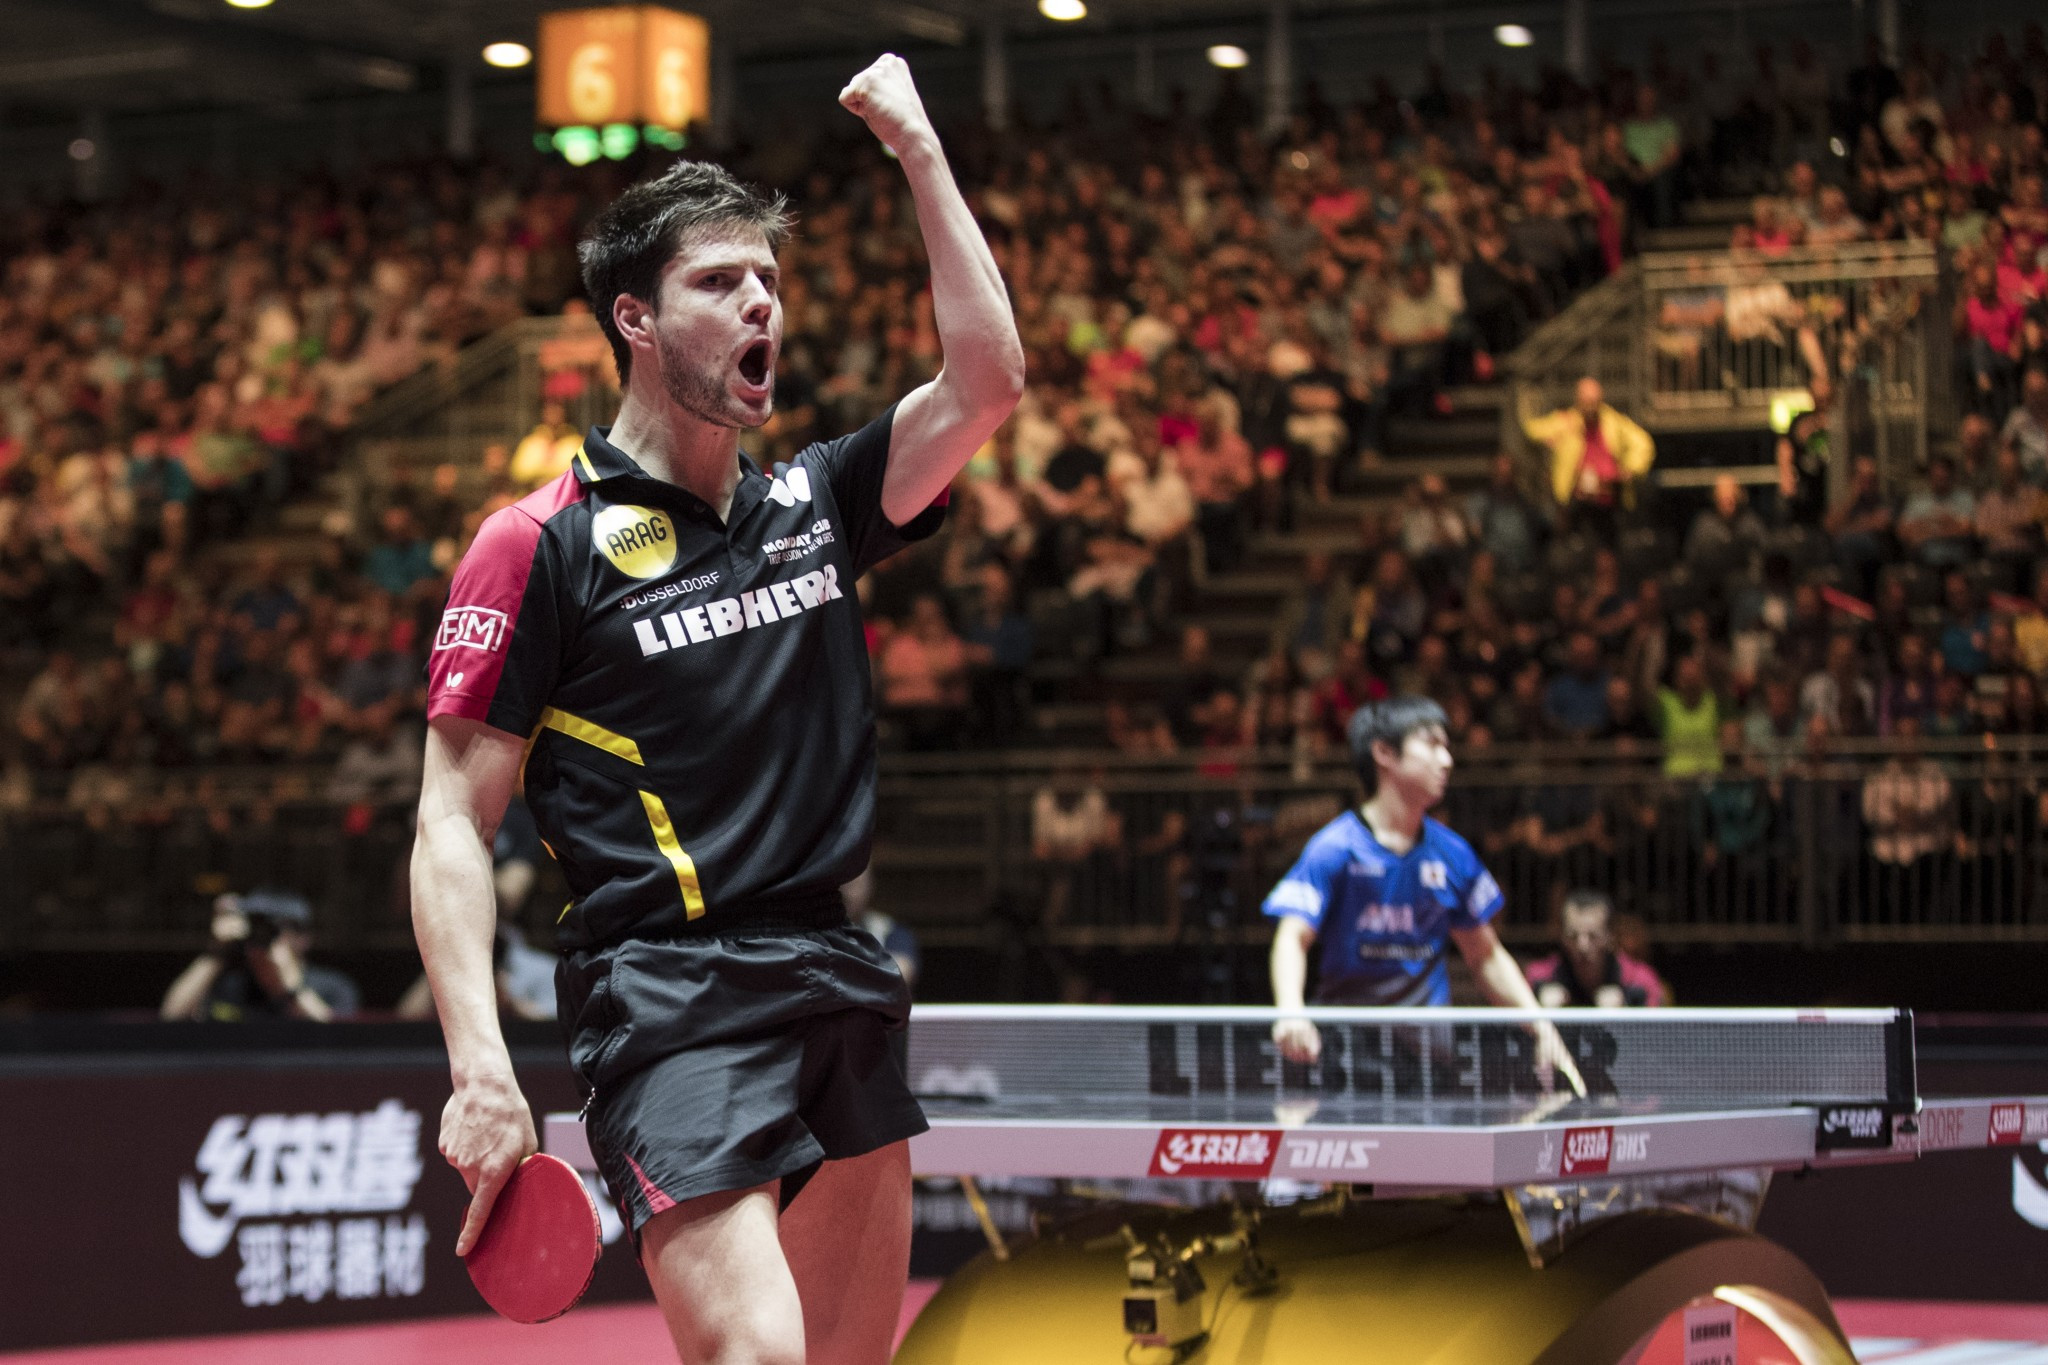 Germany's Ovtcharov favourite at ITTF Bulgaria Open